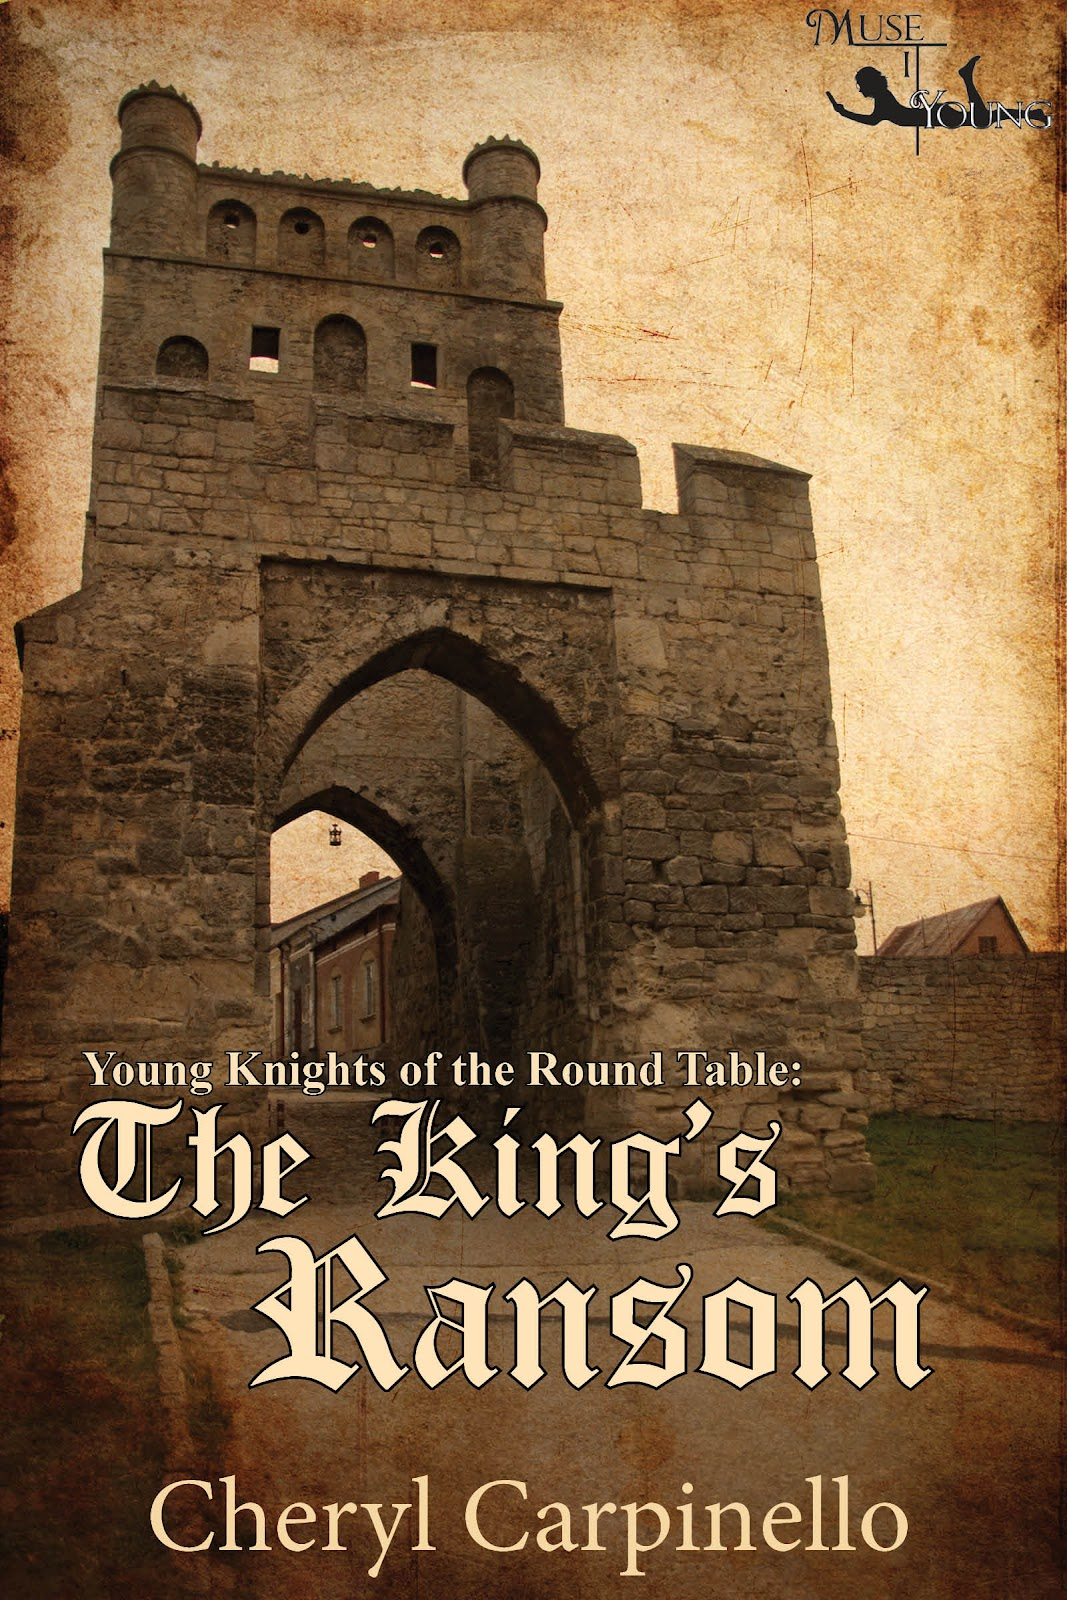 The King's Ransom-Cheryl Carpinello